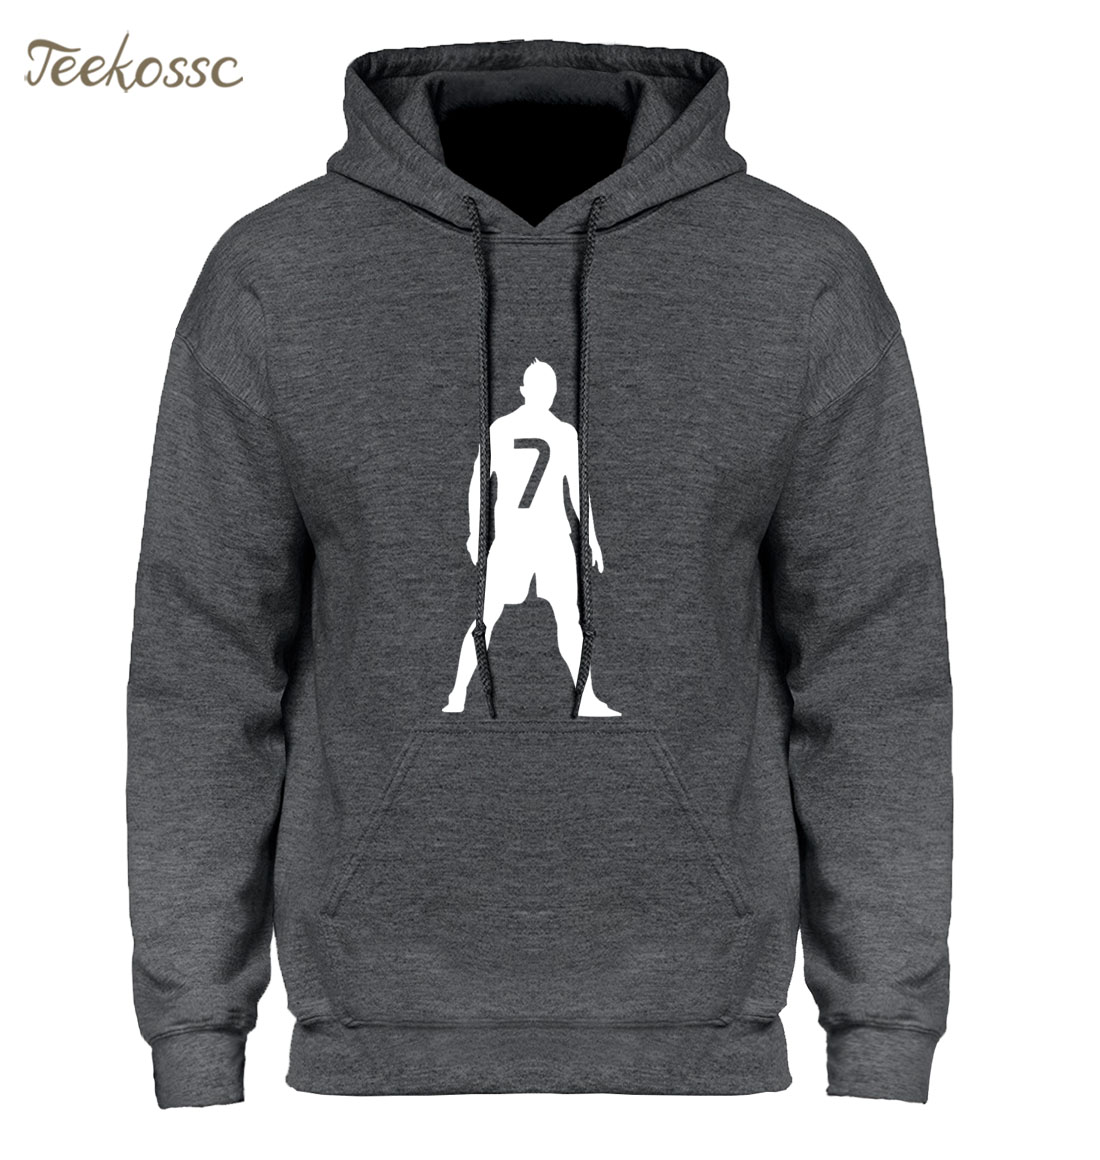 2018 Winter Autumn Men Hoodie Hoodies Sweatshirt Sportswear Streetwear Homme Homens Hooded Men Fleece Brand Clothing Hoody Coat